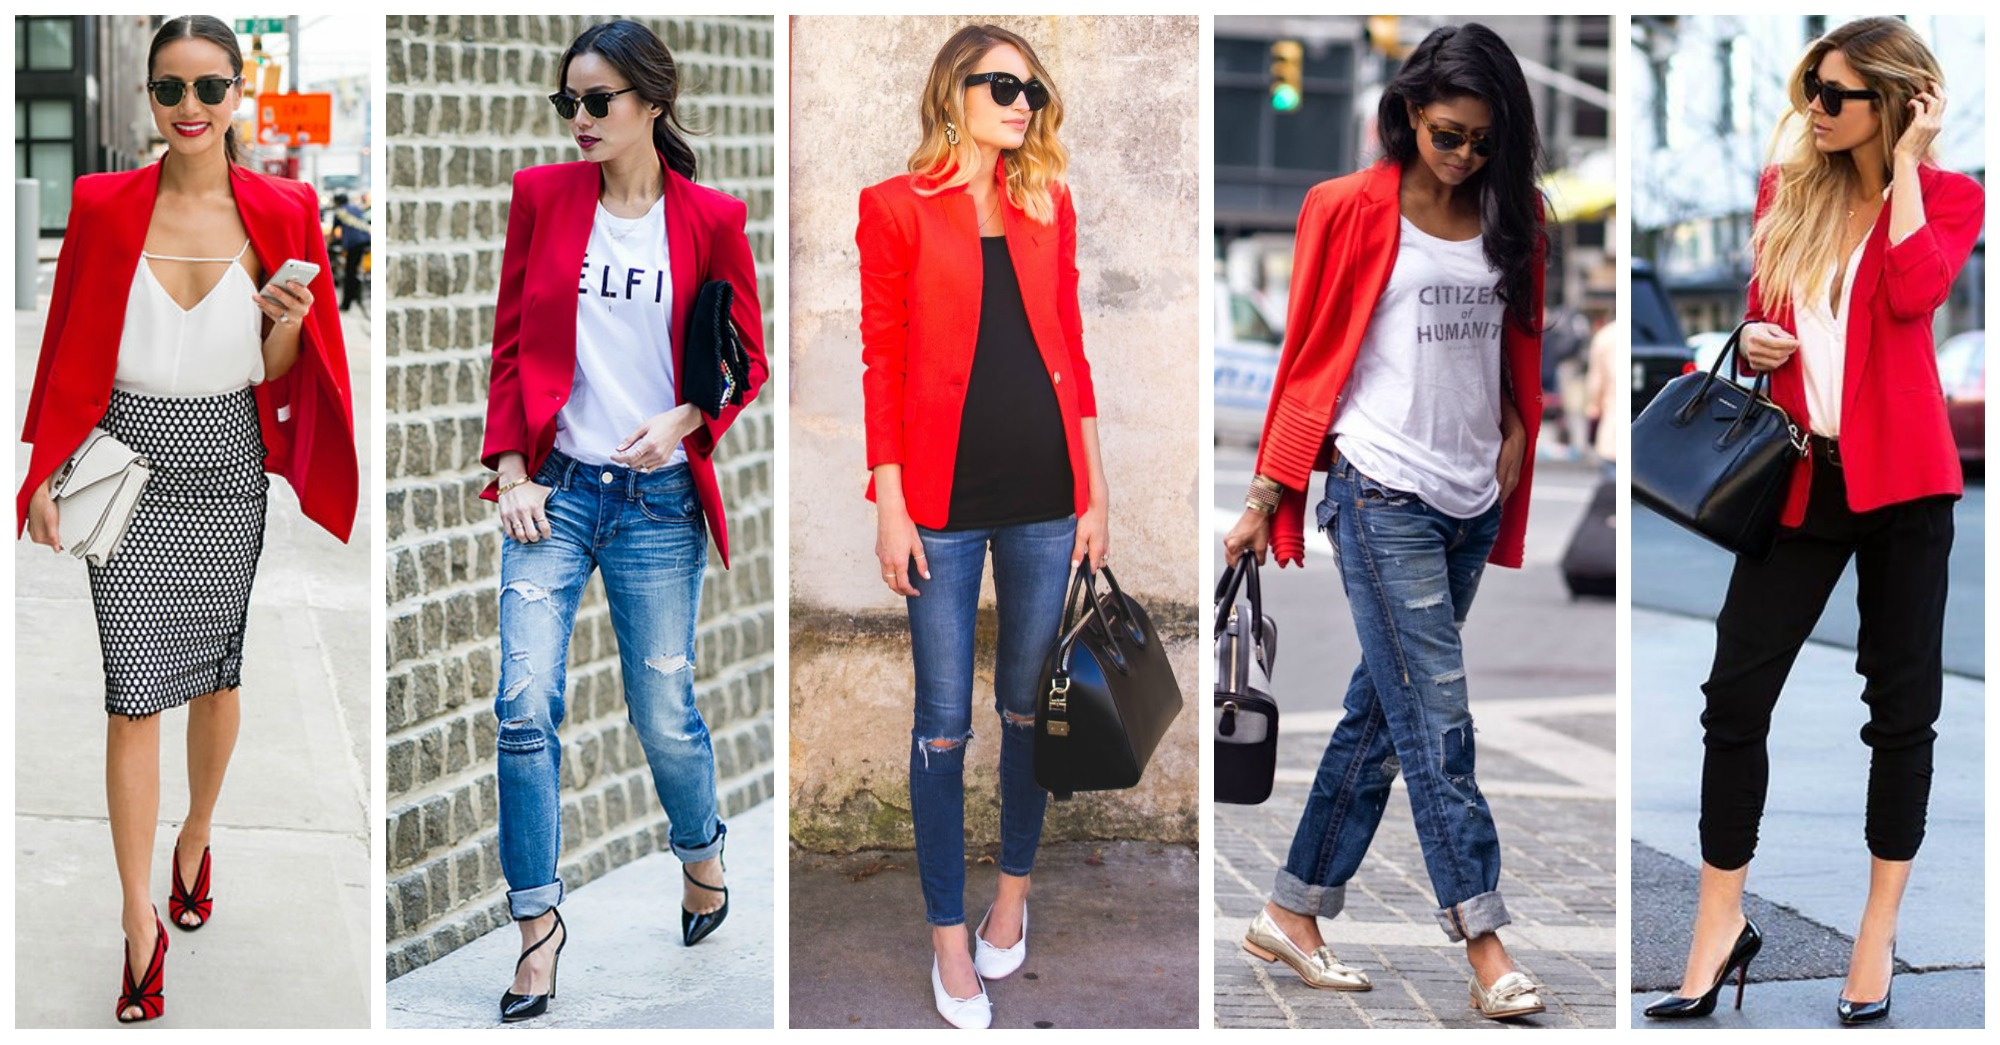 11 Fabulous Outfits with Red Blazers to Copy This Season